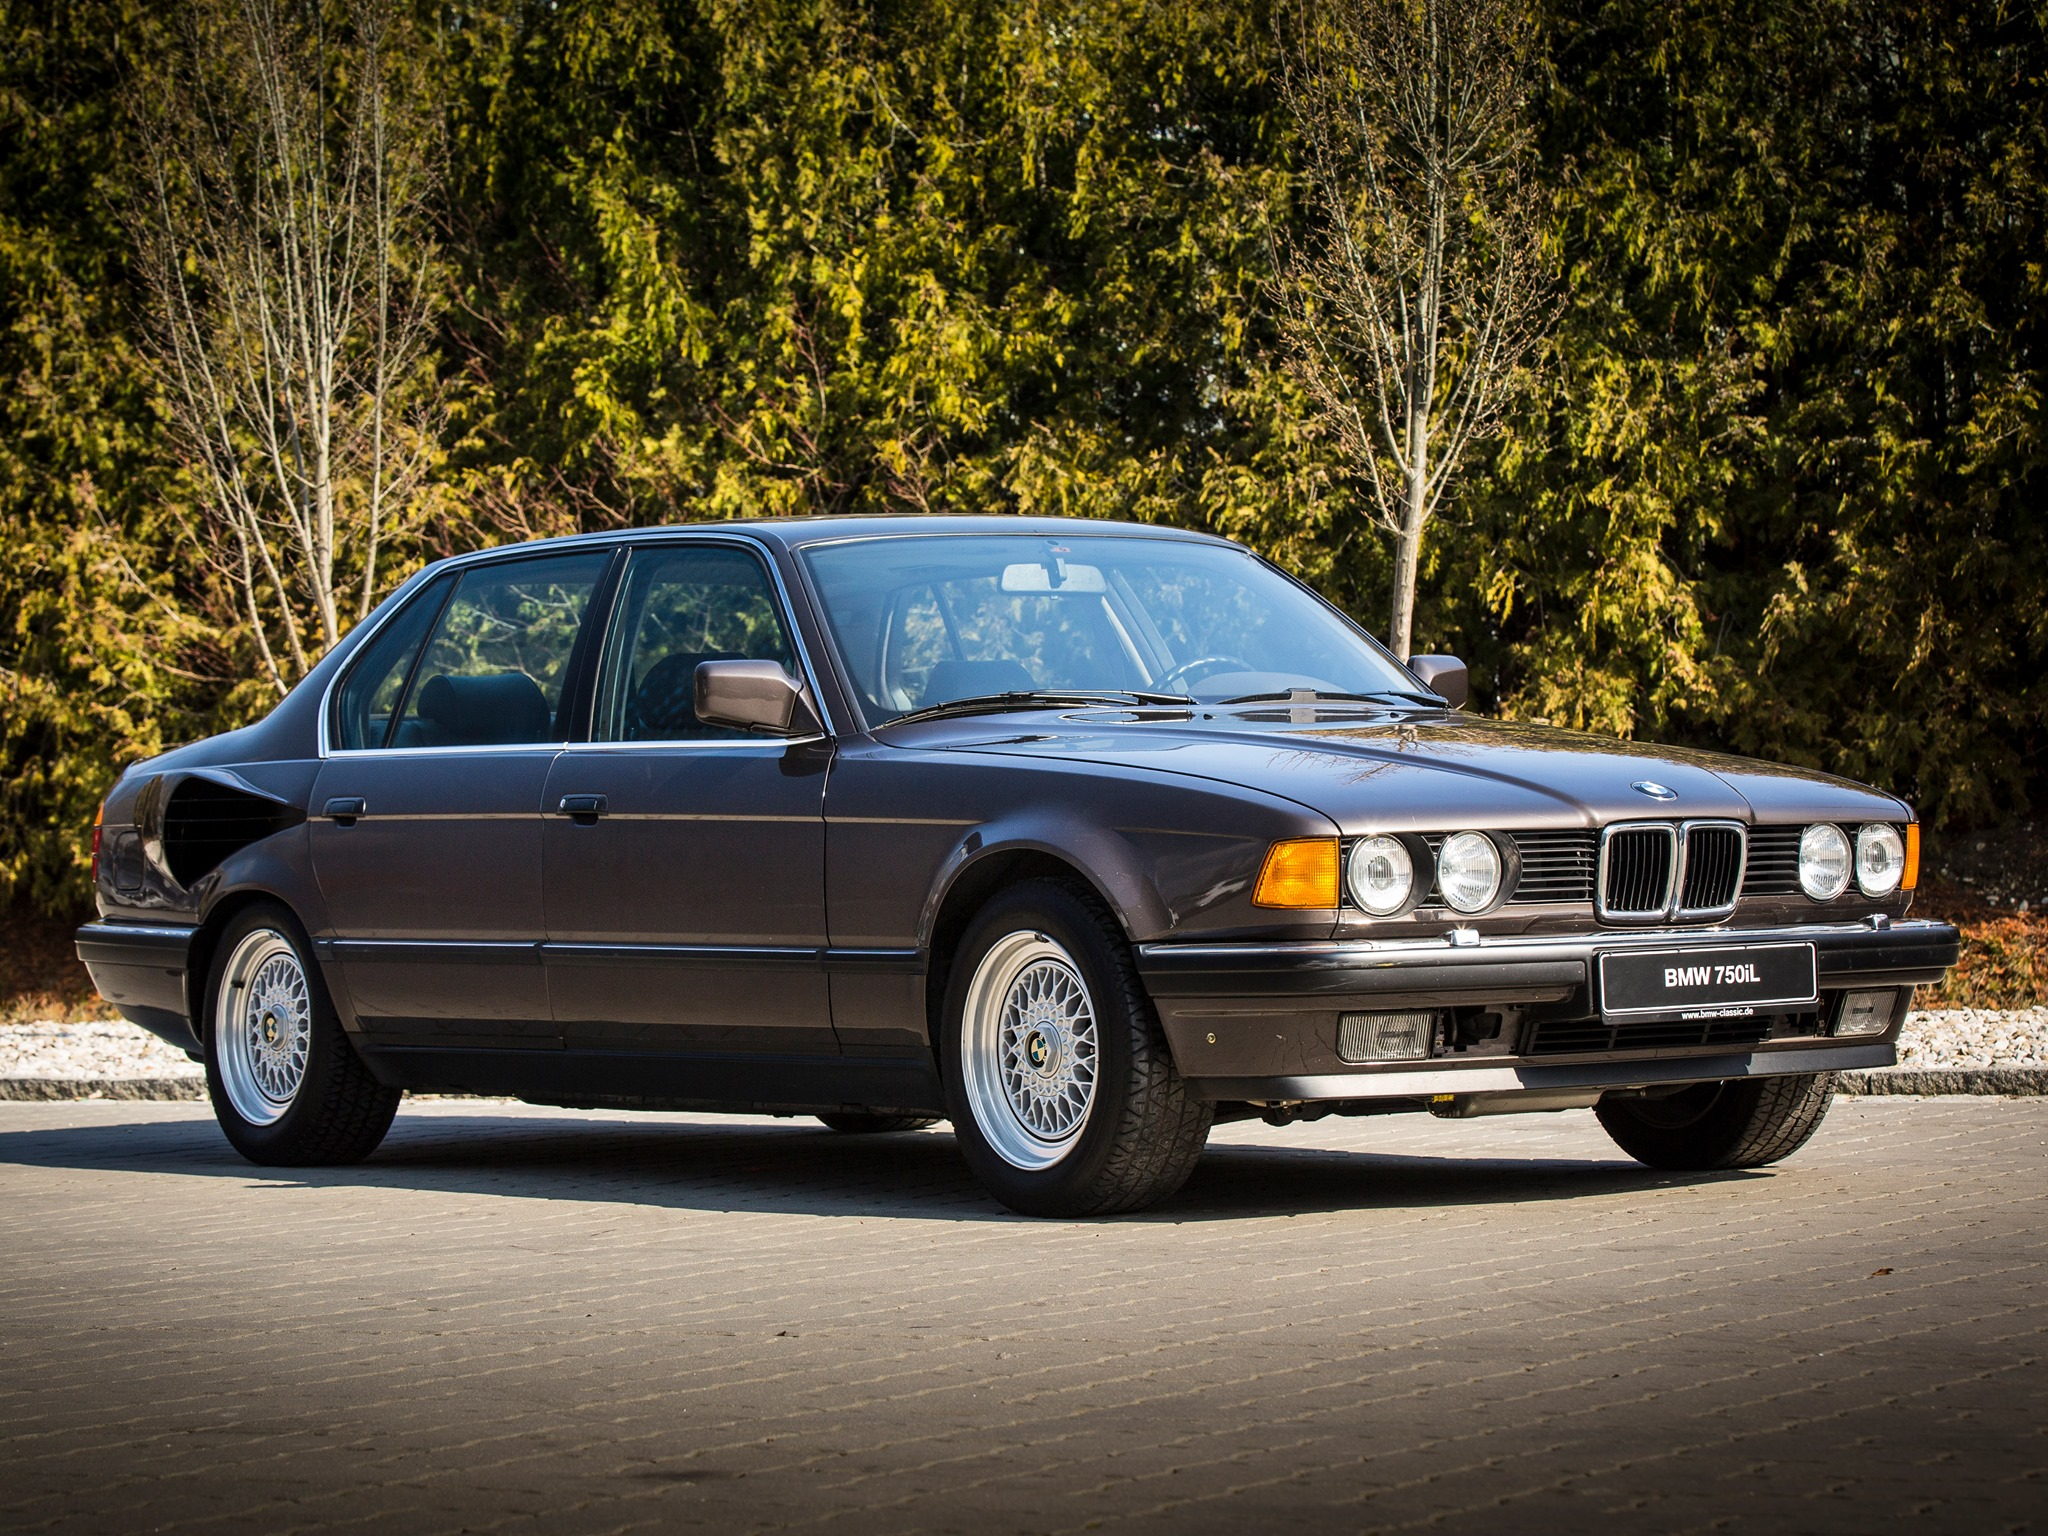 """Who Remembers the V16-powered BMW 750iL """"Goldfisch""""?"""